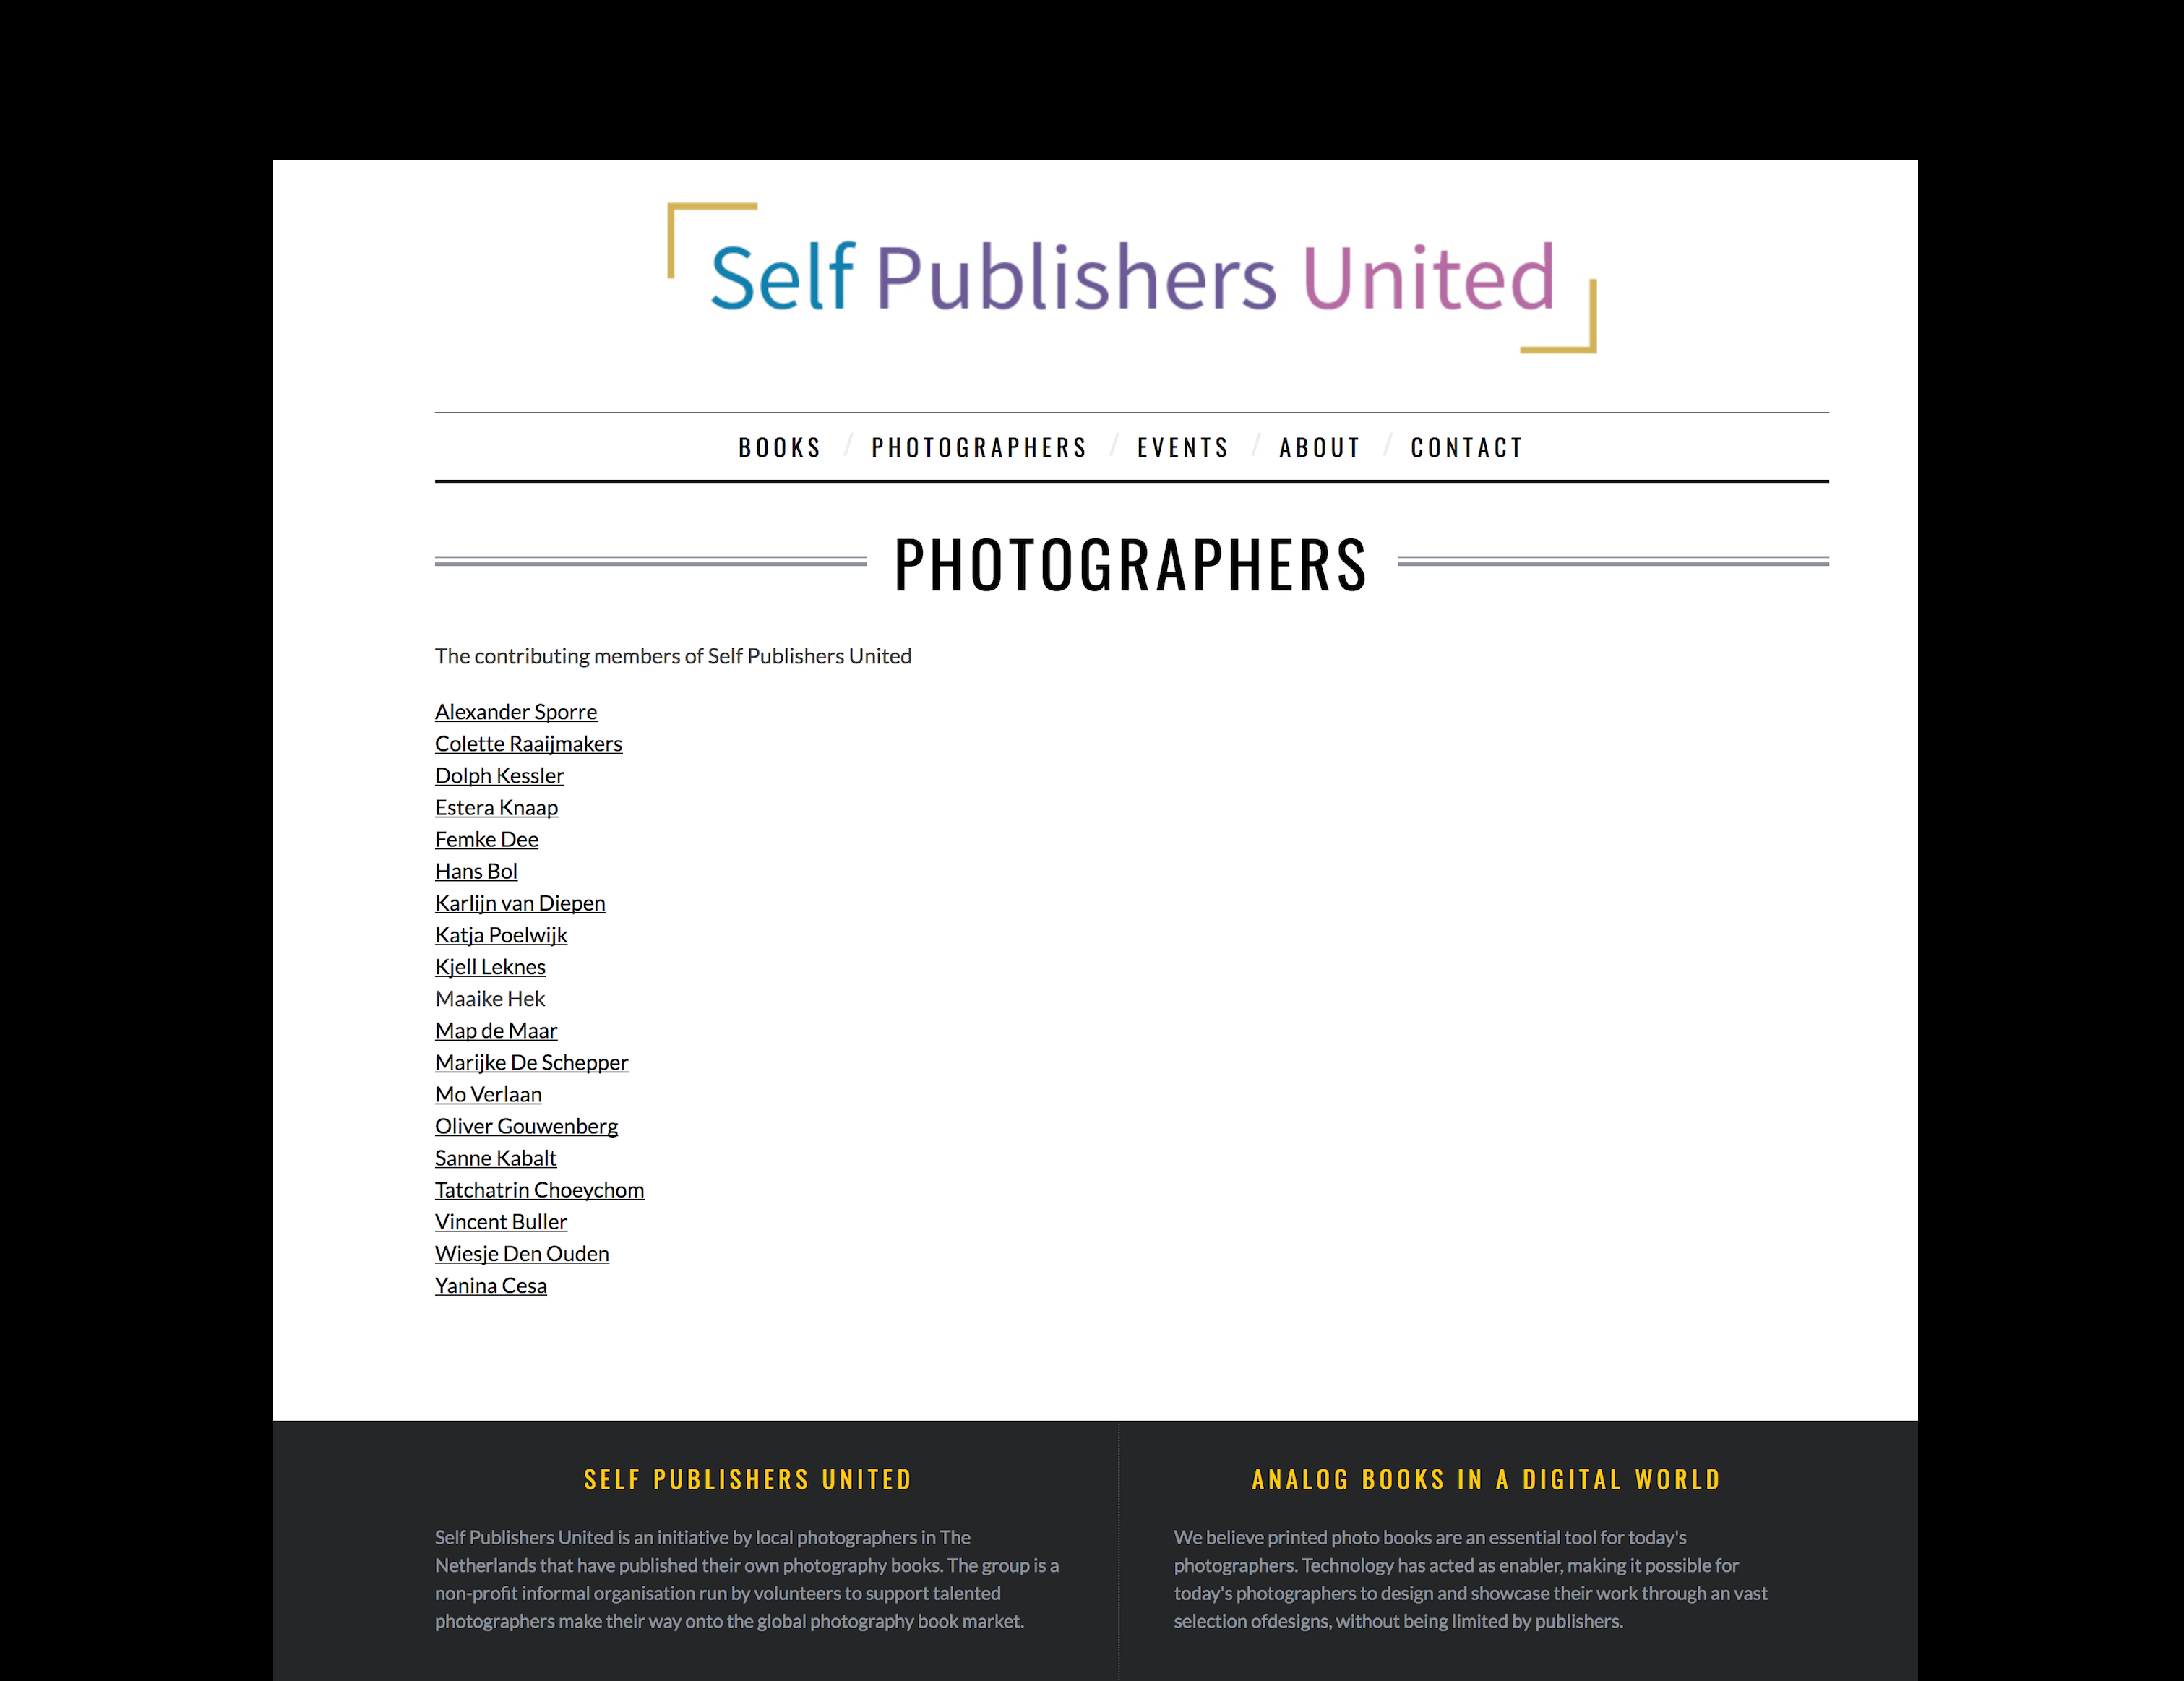 Photographers taking part in Self Publishers United